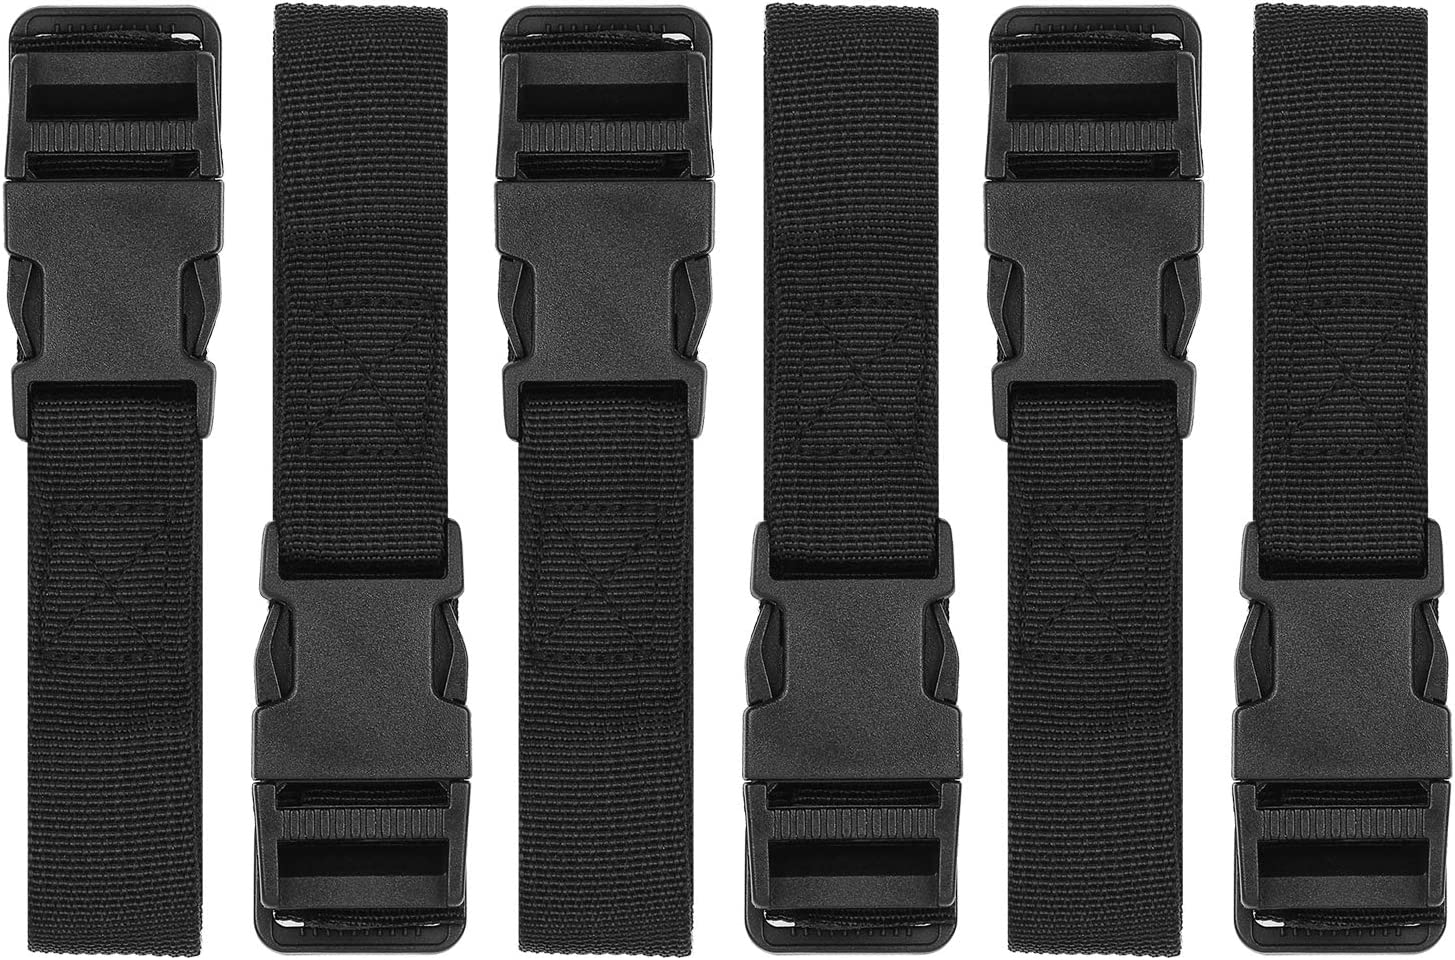 Luggage Nylon Straps with Quick Release Buckle Utility Straps for Travel Packing Outdoorsports 6 Pack 2.5 x 150cm (Black)